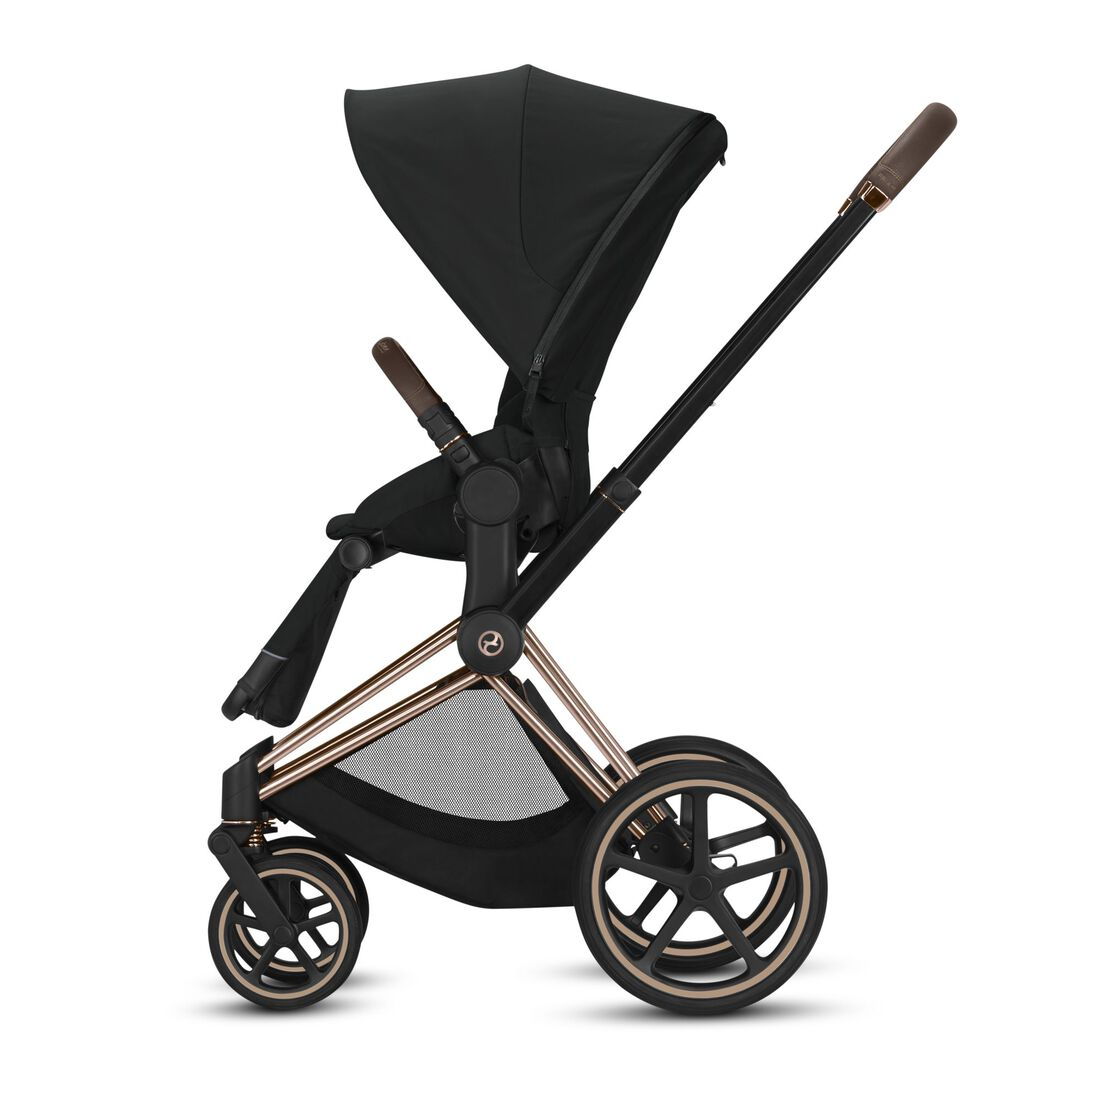 Balios S Lux - 4-IN-1 TRAVEL SYSTEM